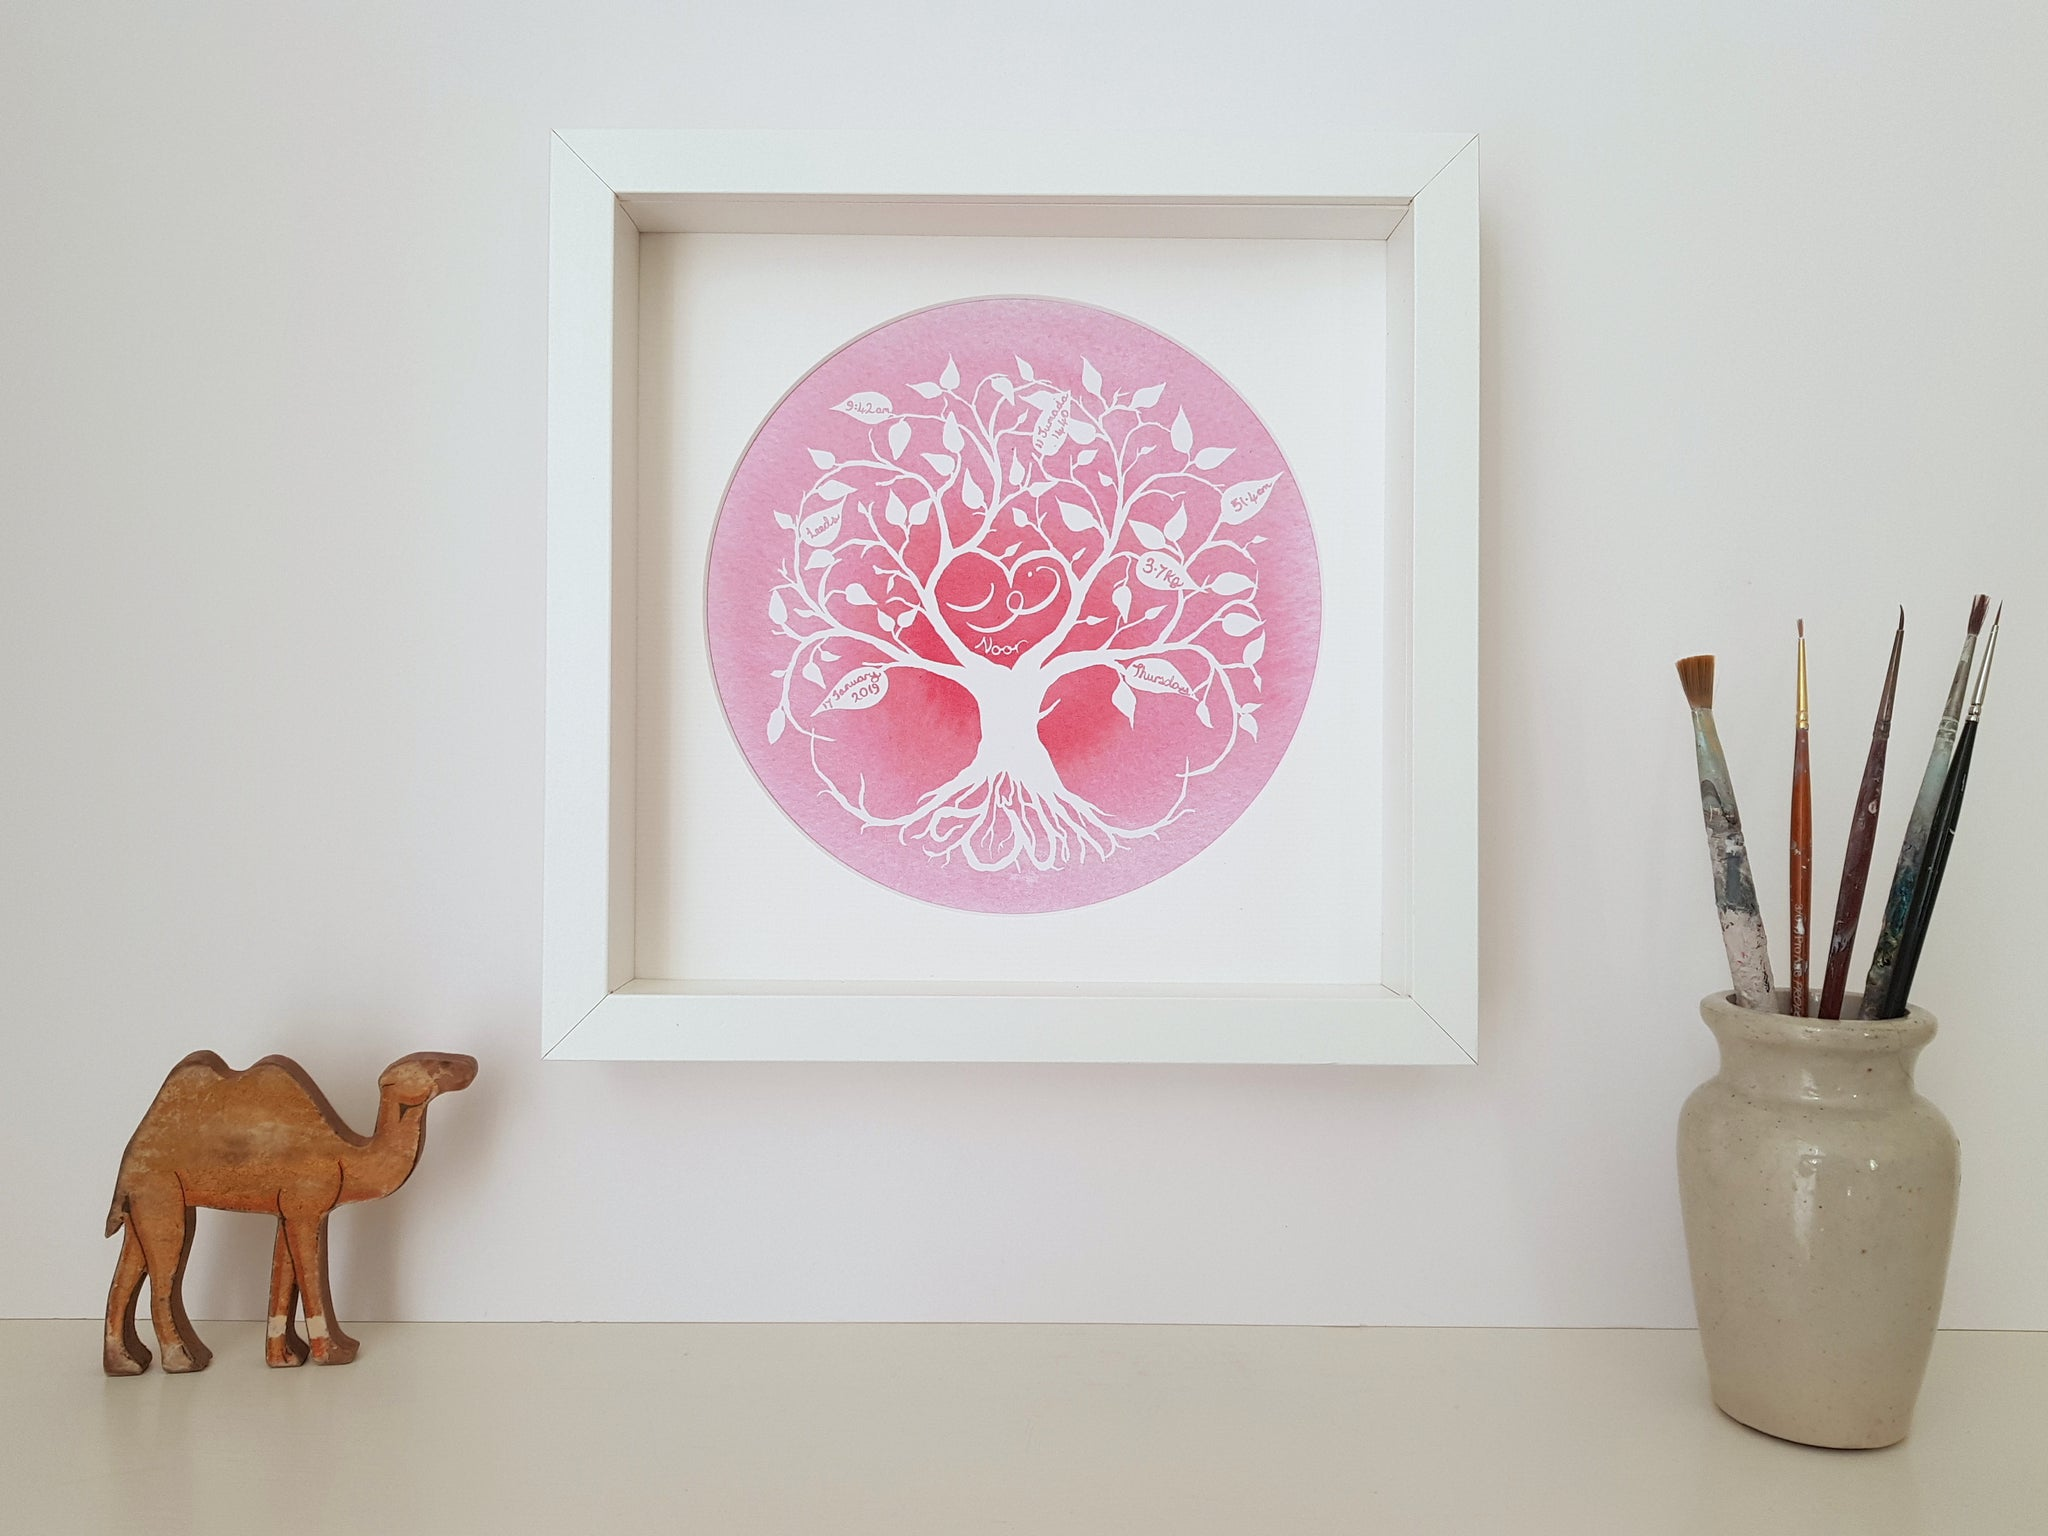 Pink Muslim baby personalised tree of life art print for Islamic Nursery by Qalbi